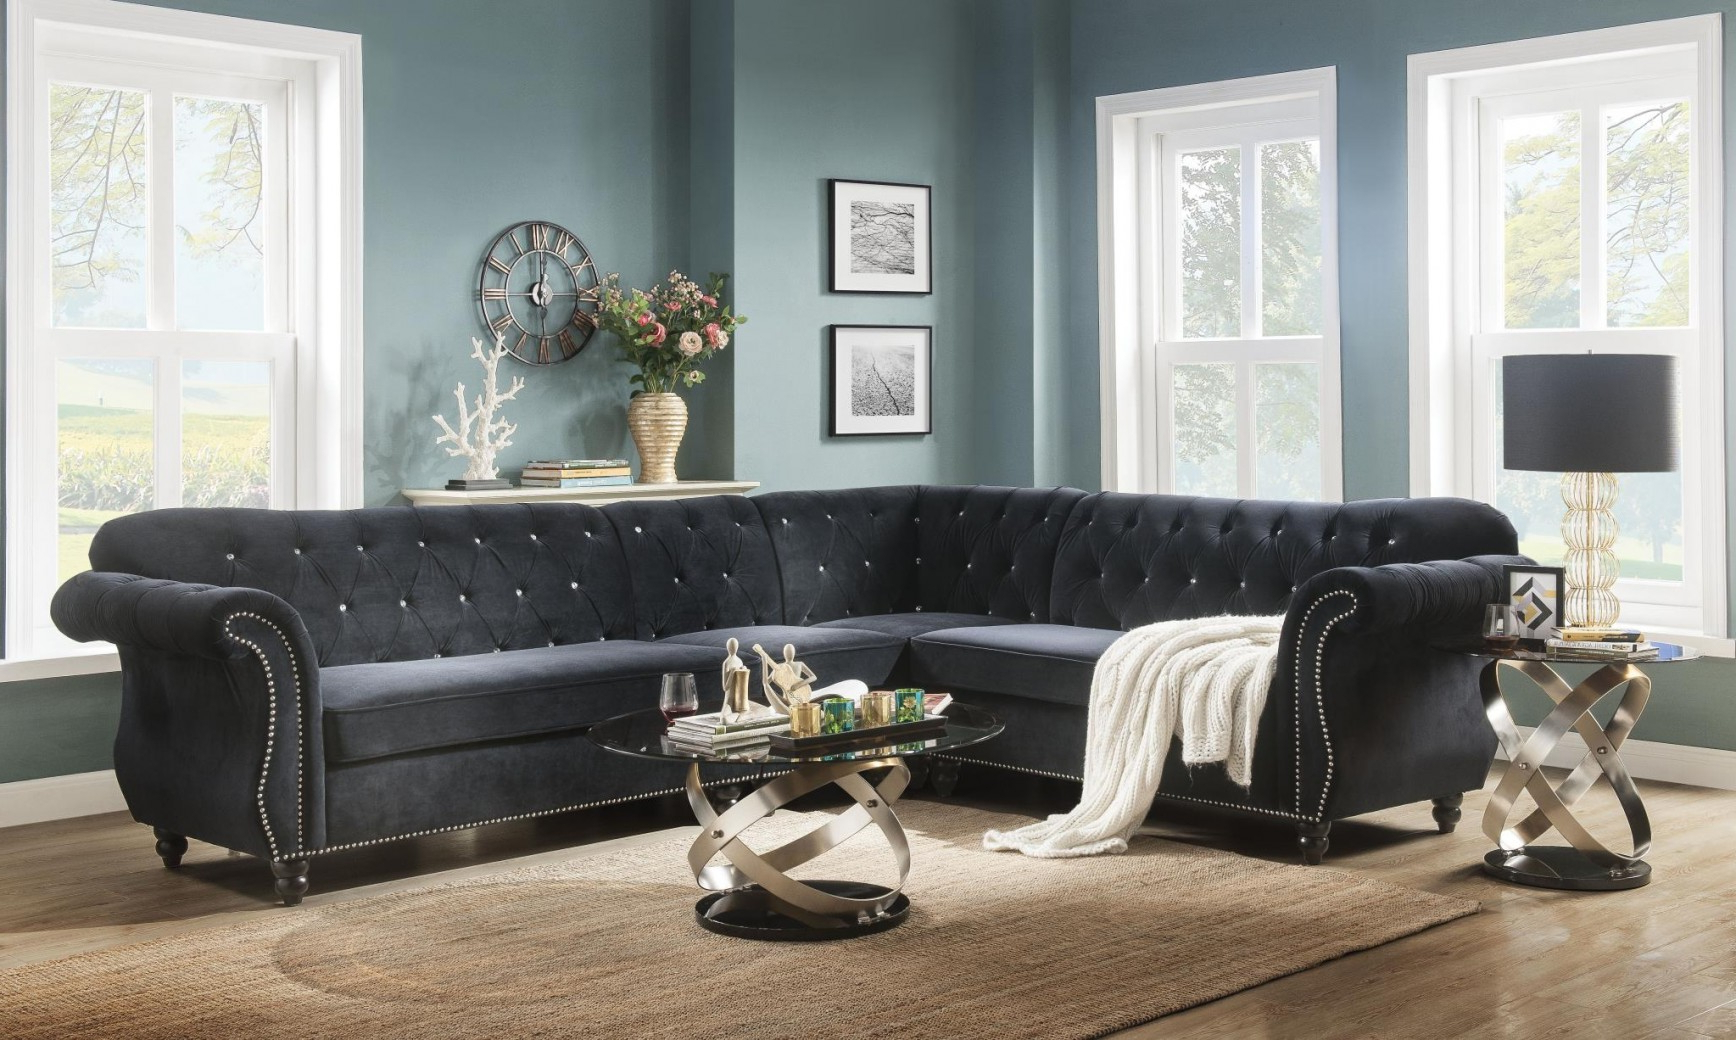 2019 3pc French Seamed Sectional Sofas Velvet Black With Regard To 52750 Black Velvet Sectional Sofa Acme Regan Collection (View 11 of 20)